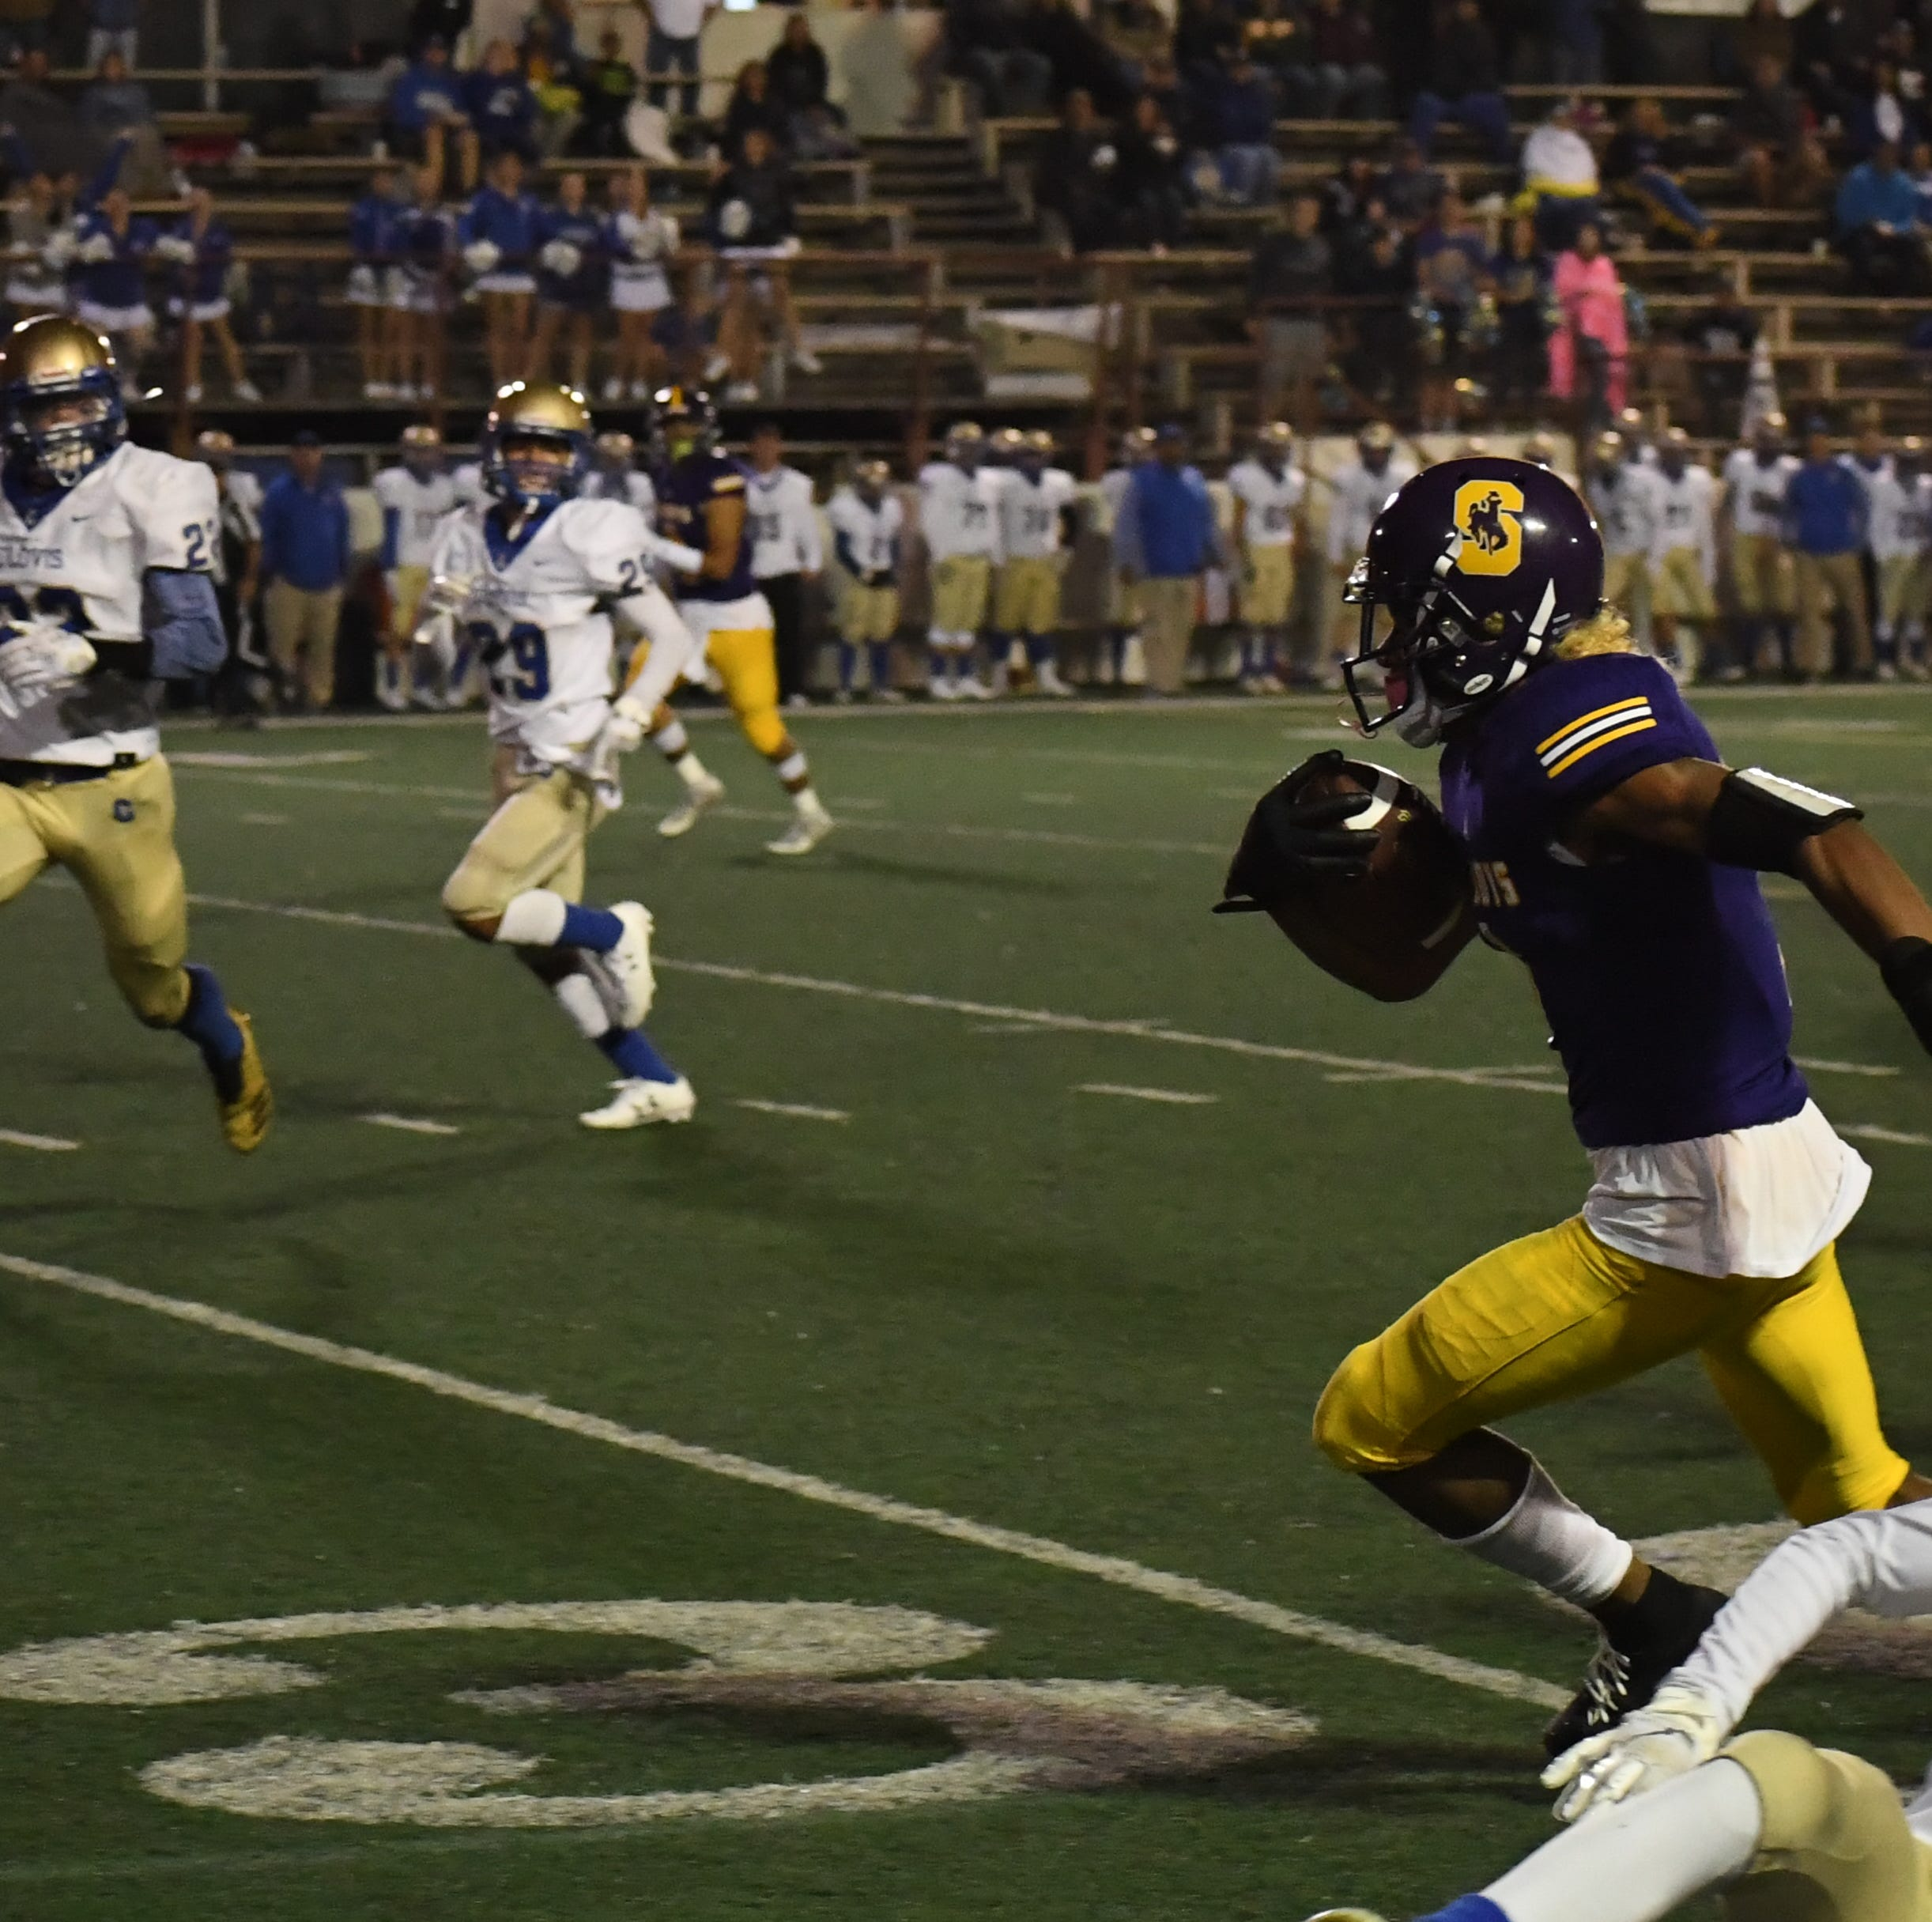 Game of the Week: Can Salinas take on familiar enemy Milpitas again? We'll find out Friday